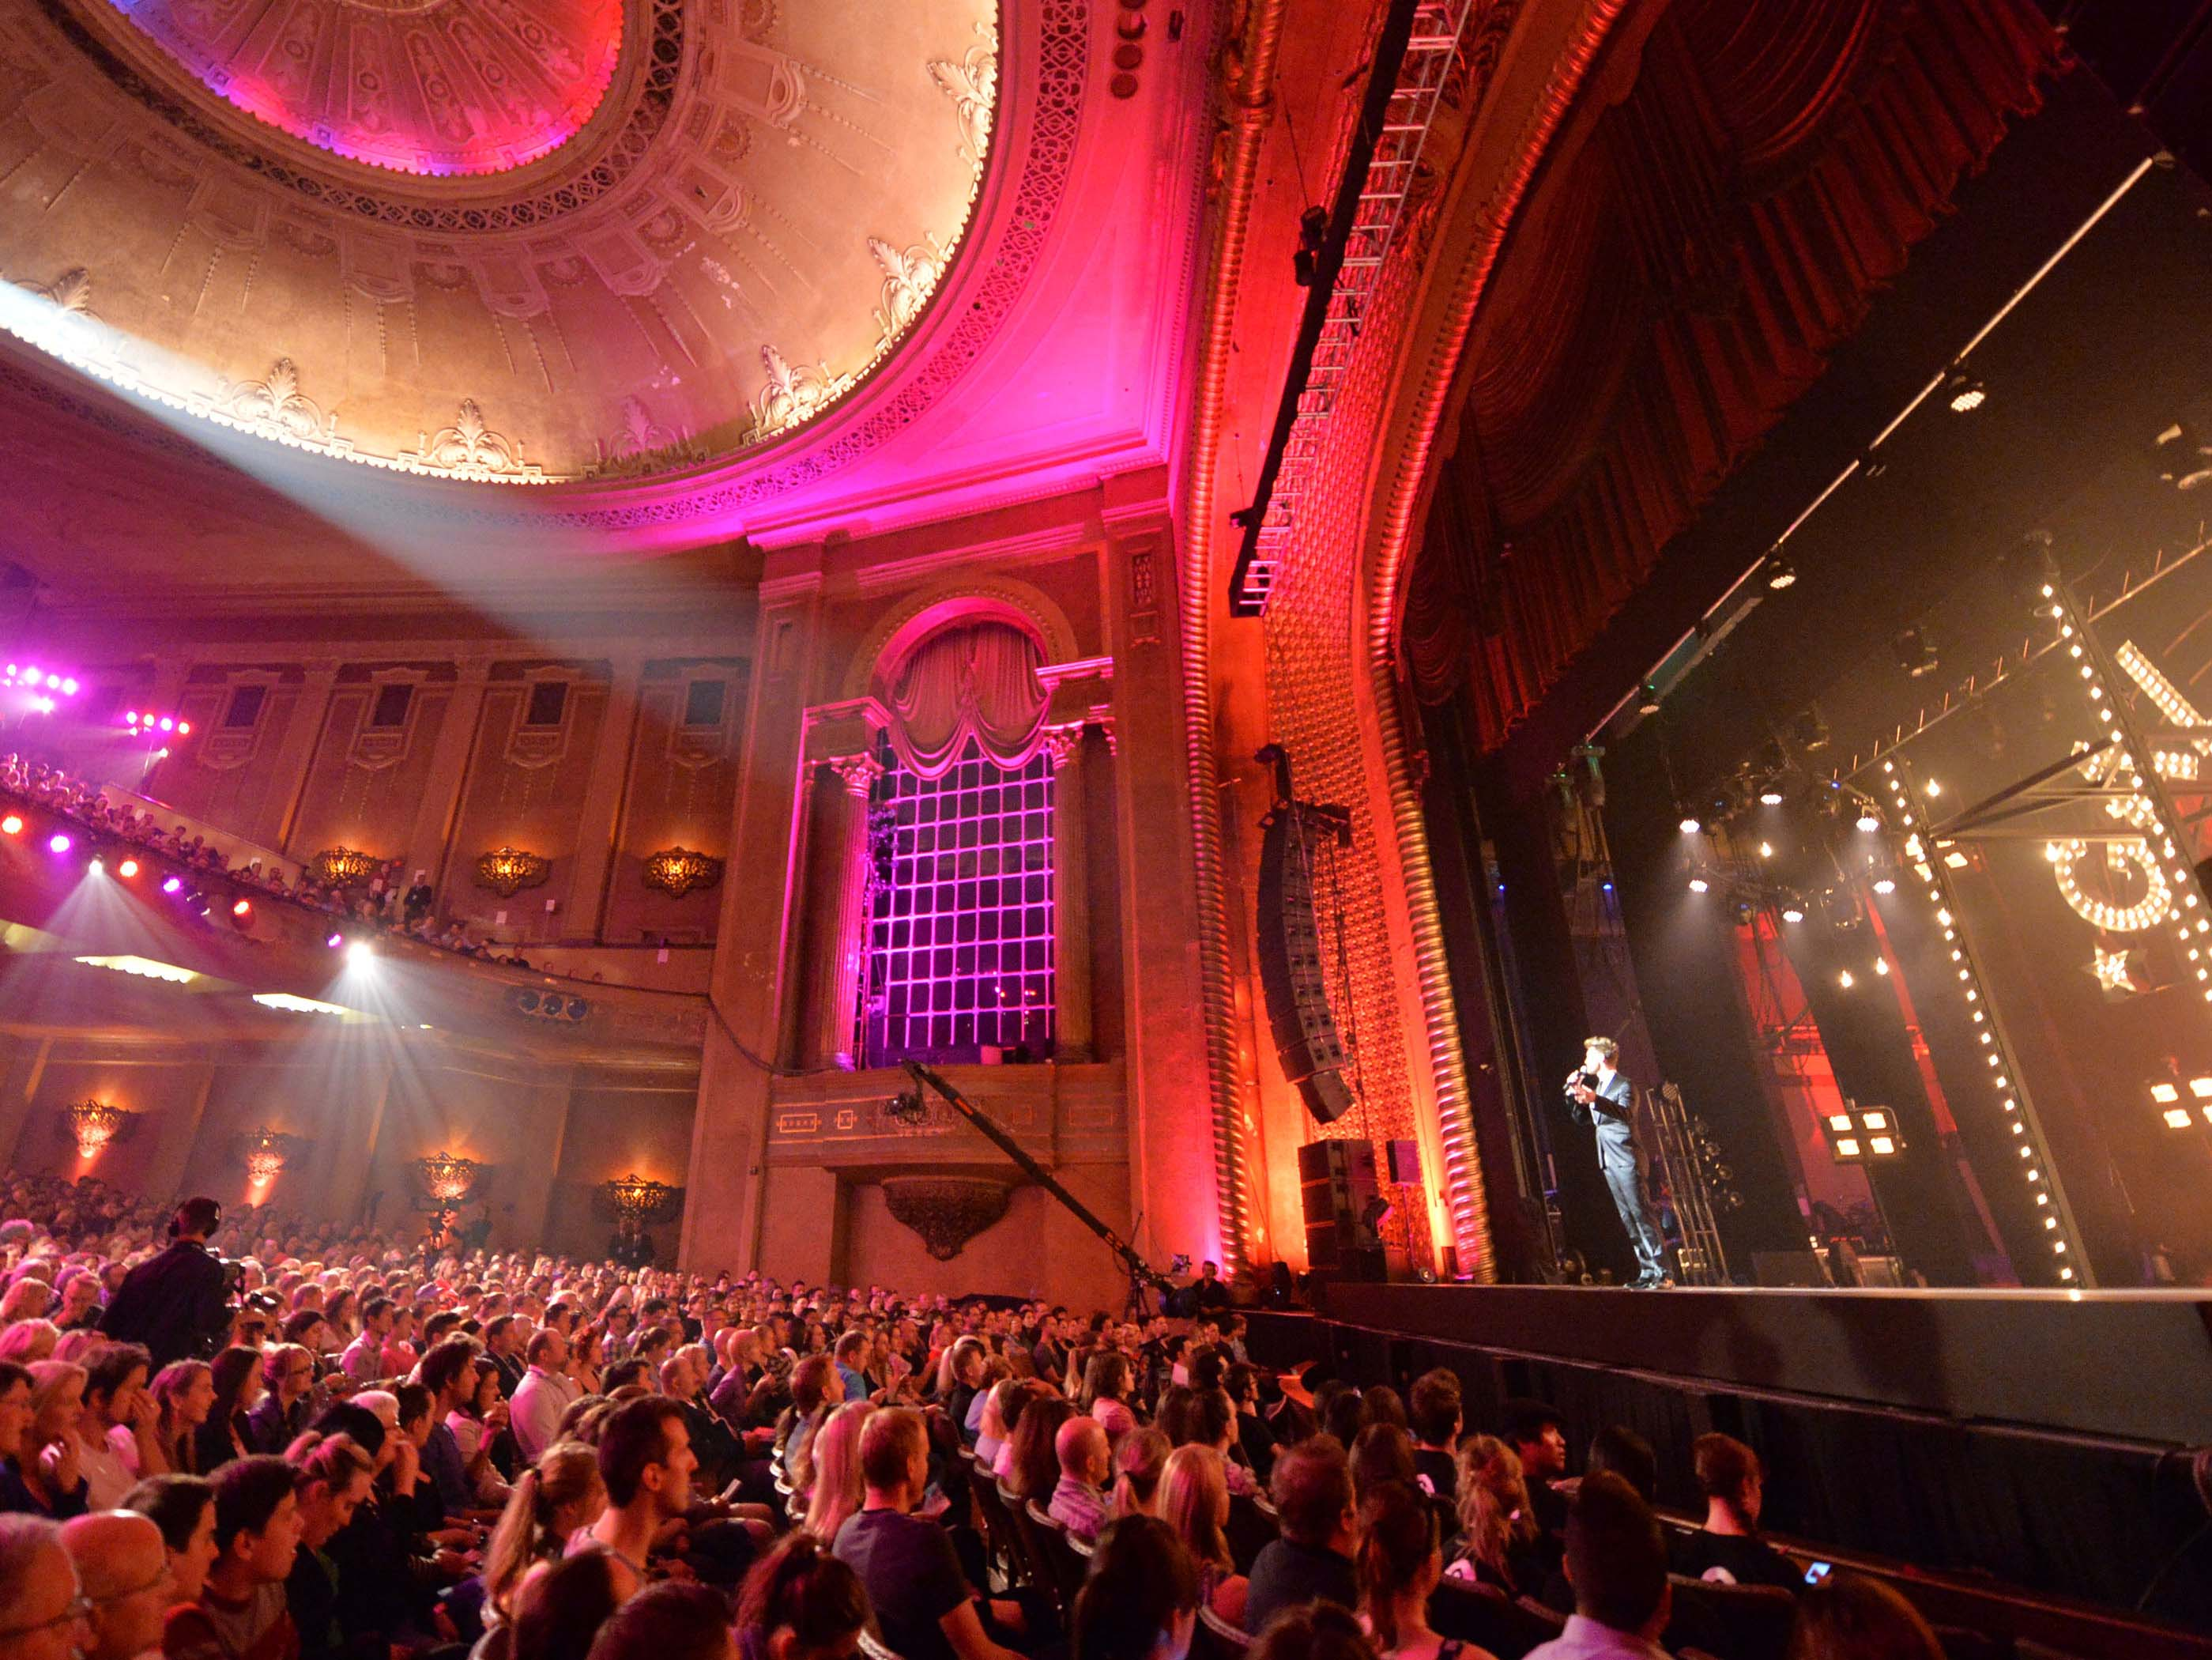 Melbourne International Comedy Festival, Palais Theatre, St Kilda, Melbourne, Victoria, Australia. Photo: Jim Lee